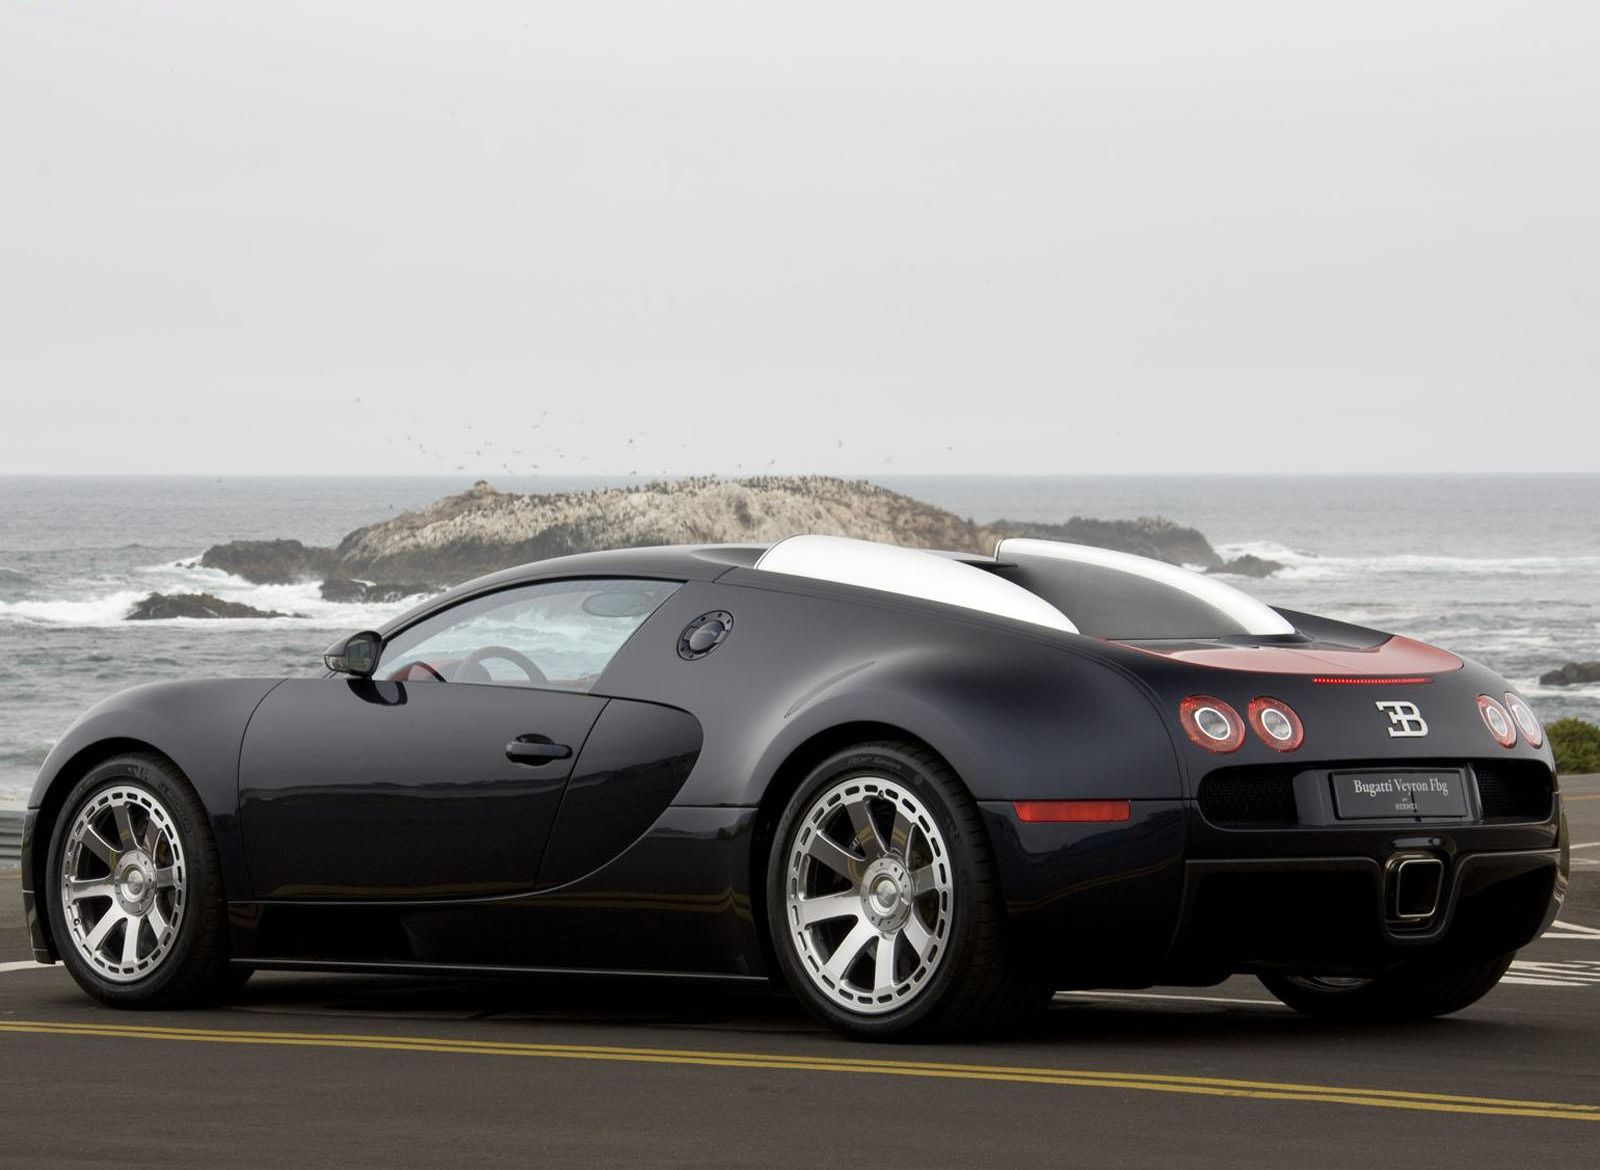 2009 Bugatti Veyron Fbg par Hermes photo - 3